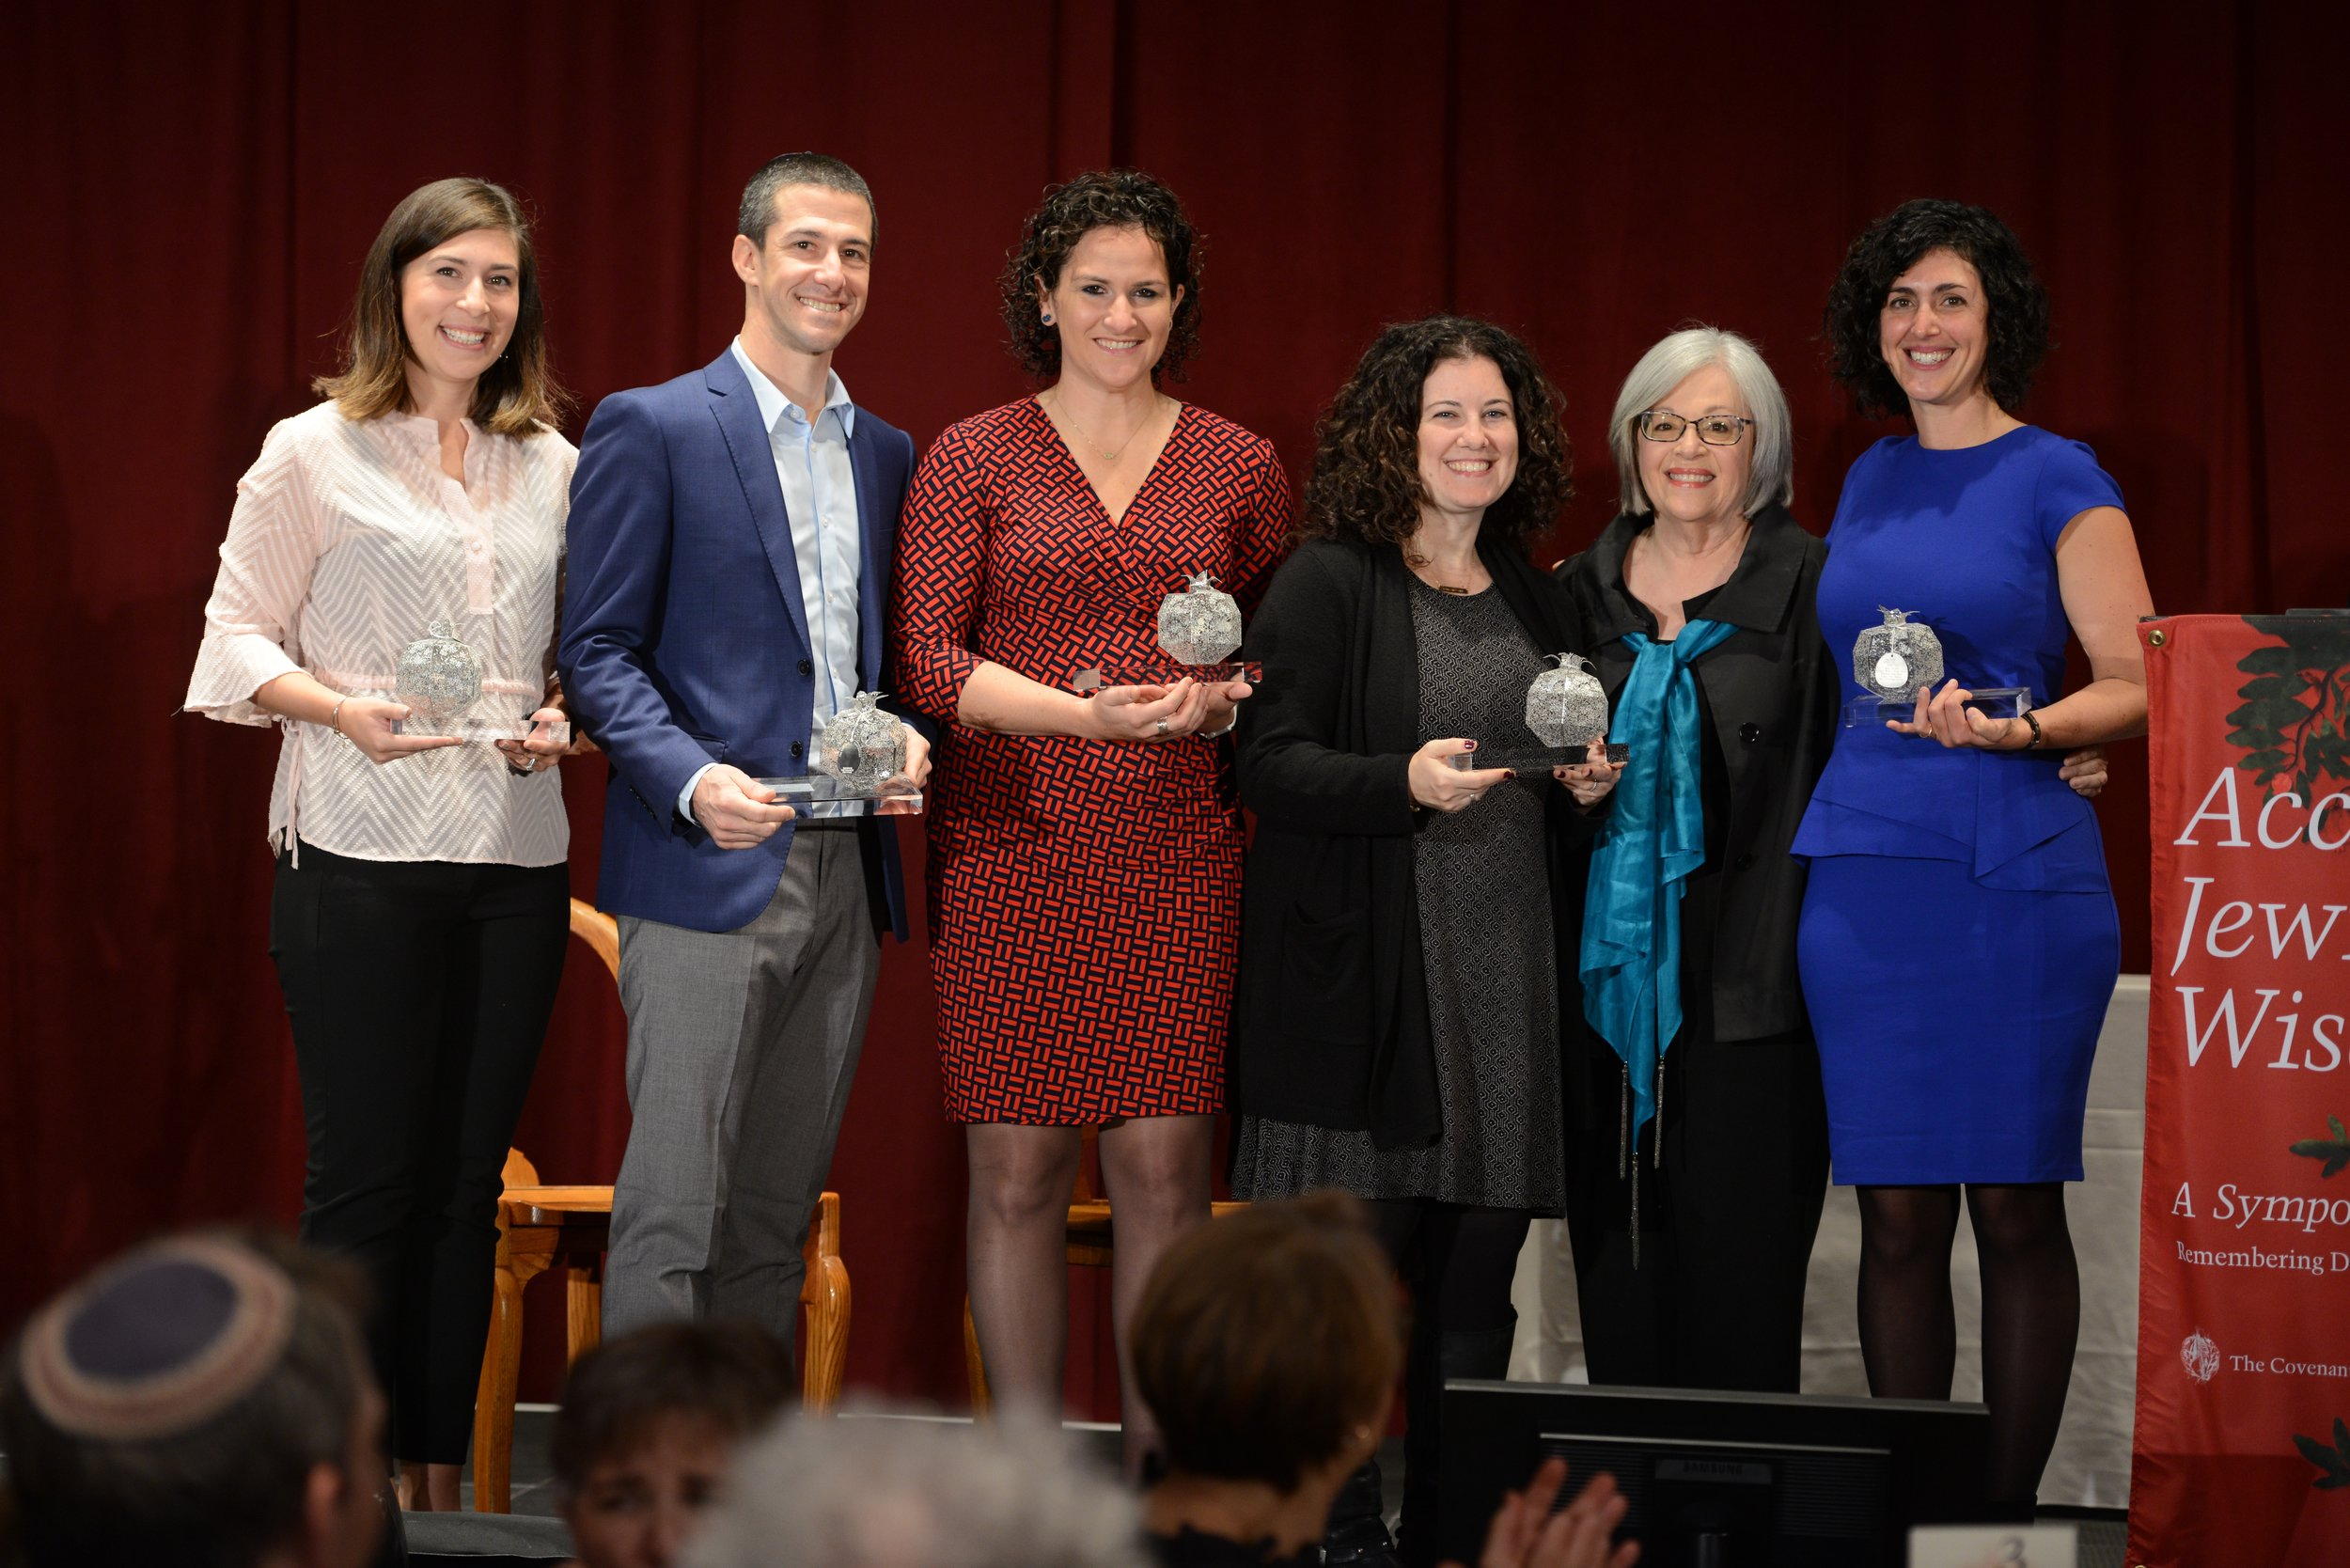 The 2018 Pomegranate Prize recipients, with Covenant Foundation Board Chair Cheryl Finkel. From left to right: Hannah Kearney, Oren Kaunfer, Maiya Chard-Yaron, Ilana Gleicher-Bloom, Cheryl Finkel and Rabbi Adina Allen.